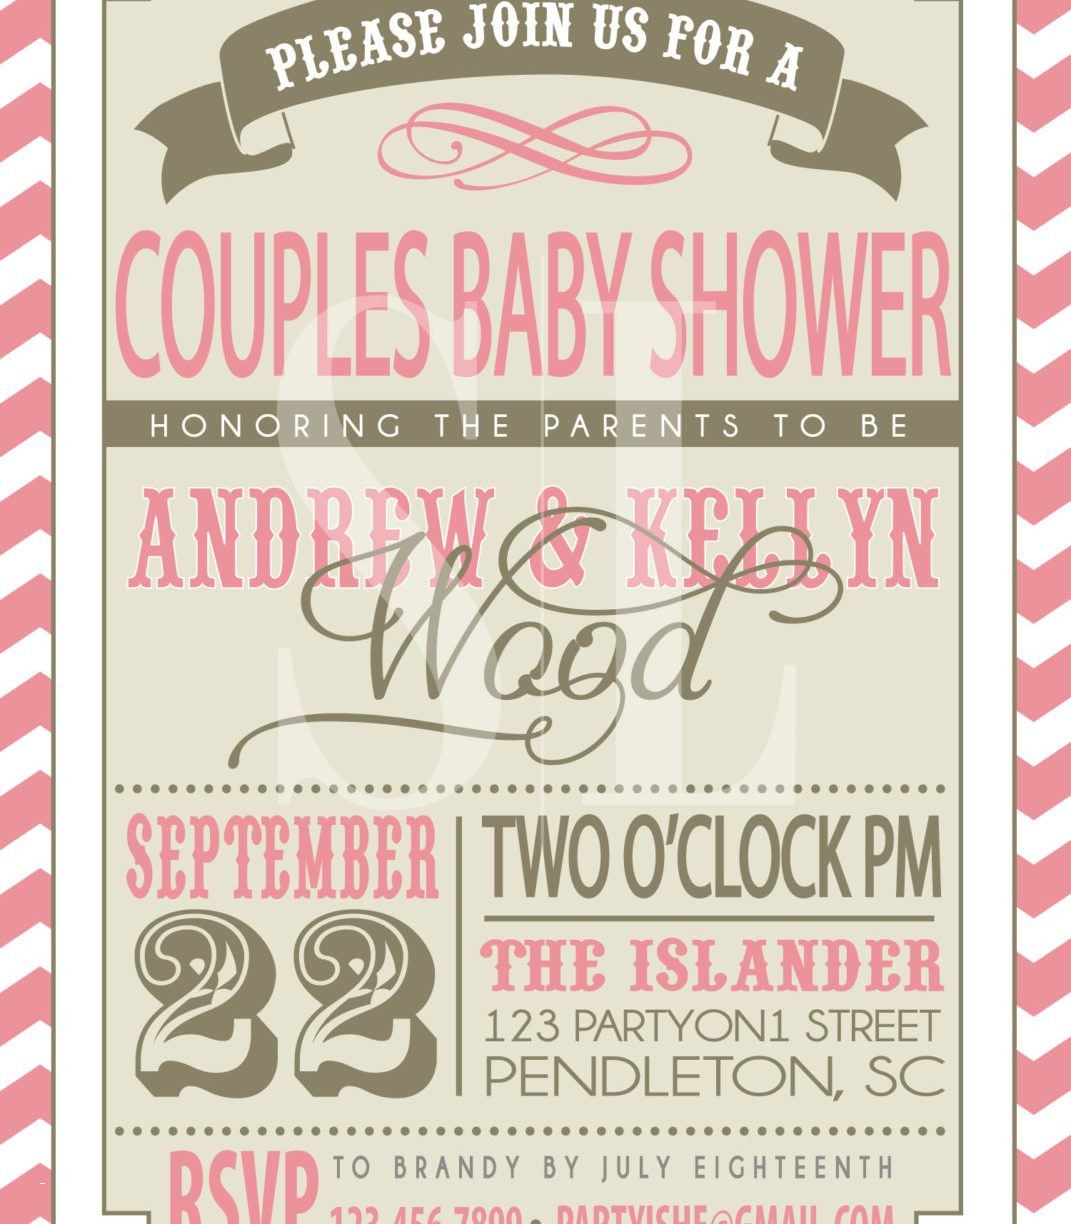 Full Size of Baby Shower:precious Coed Baby Shower Picture Designs Coed Baby Shower Baby Shower Invitation Ecards Best Of Coed Baby Showerions Boy Baby Shower Invitation Ecards Best Of Coed Baby Showerions Boy Girlion Wording Couples Ideas Fun Couple